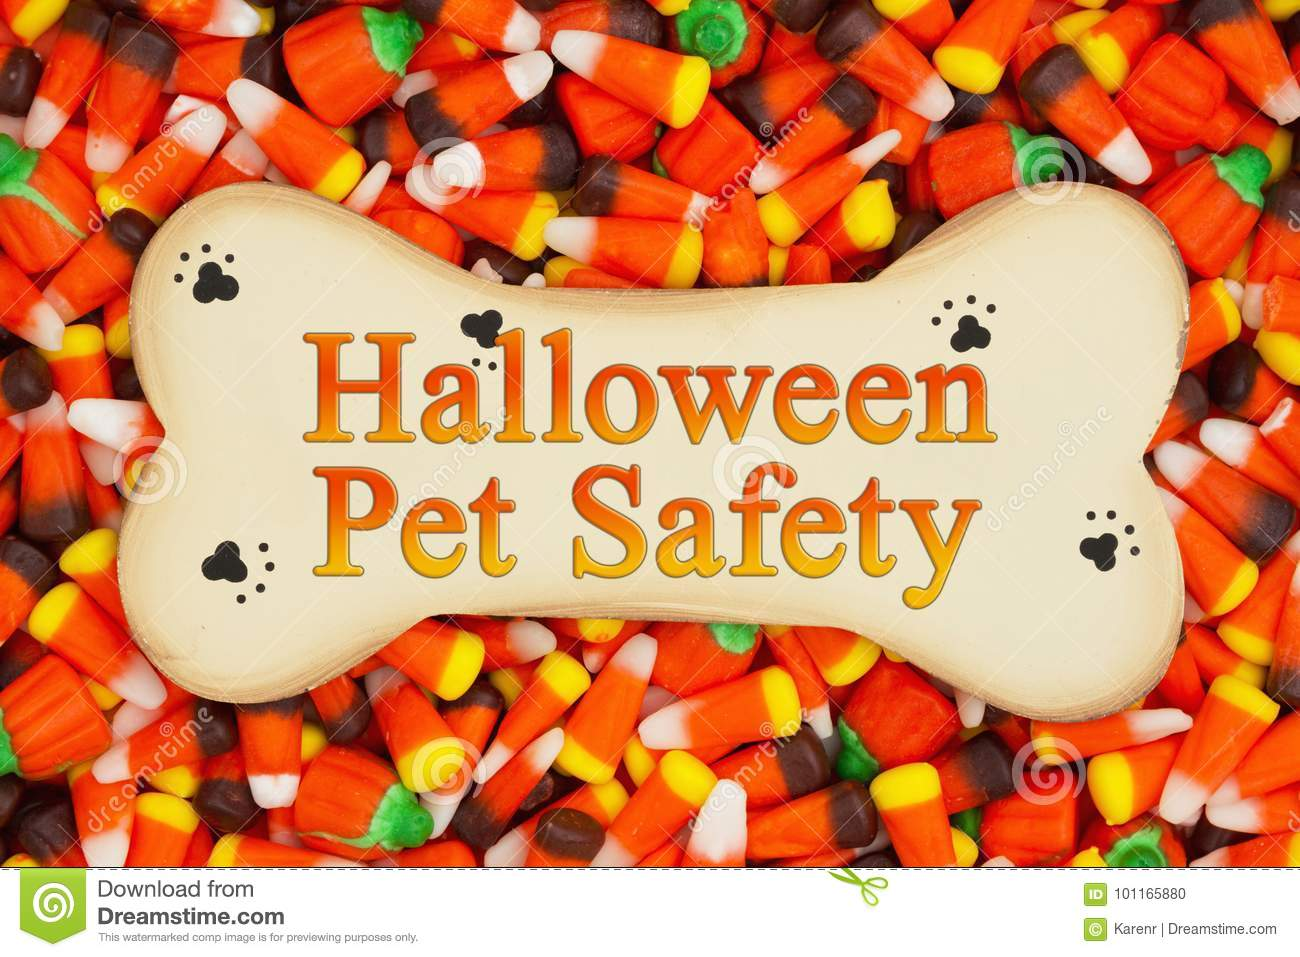 halloween pet safety message on wood dog bone with candy corn background